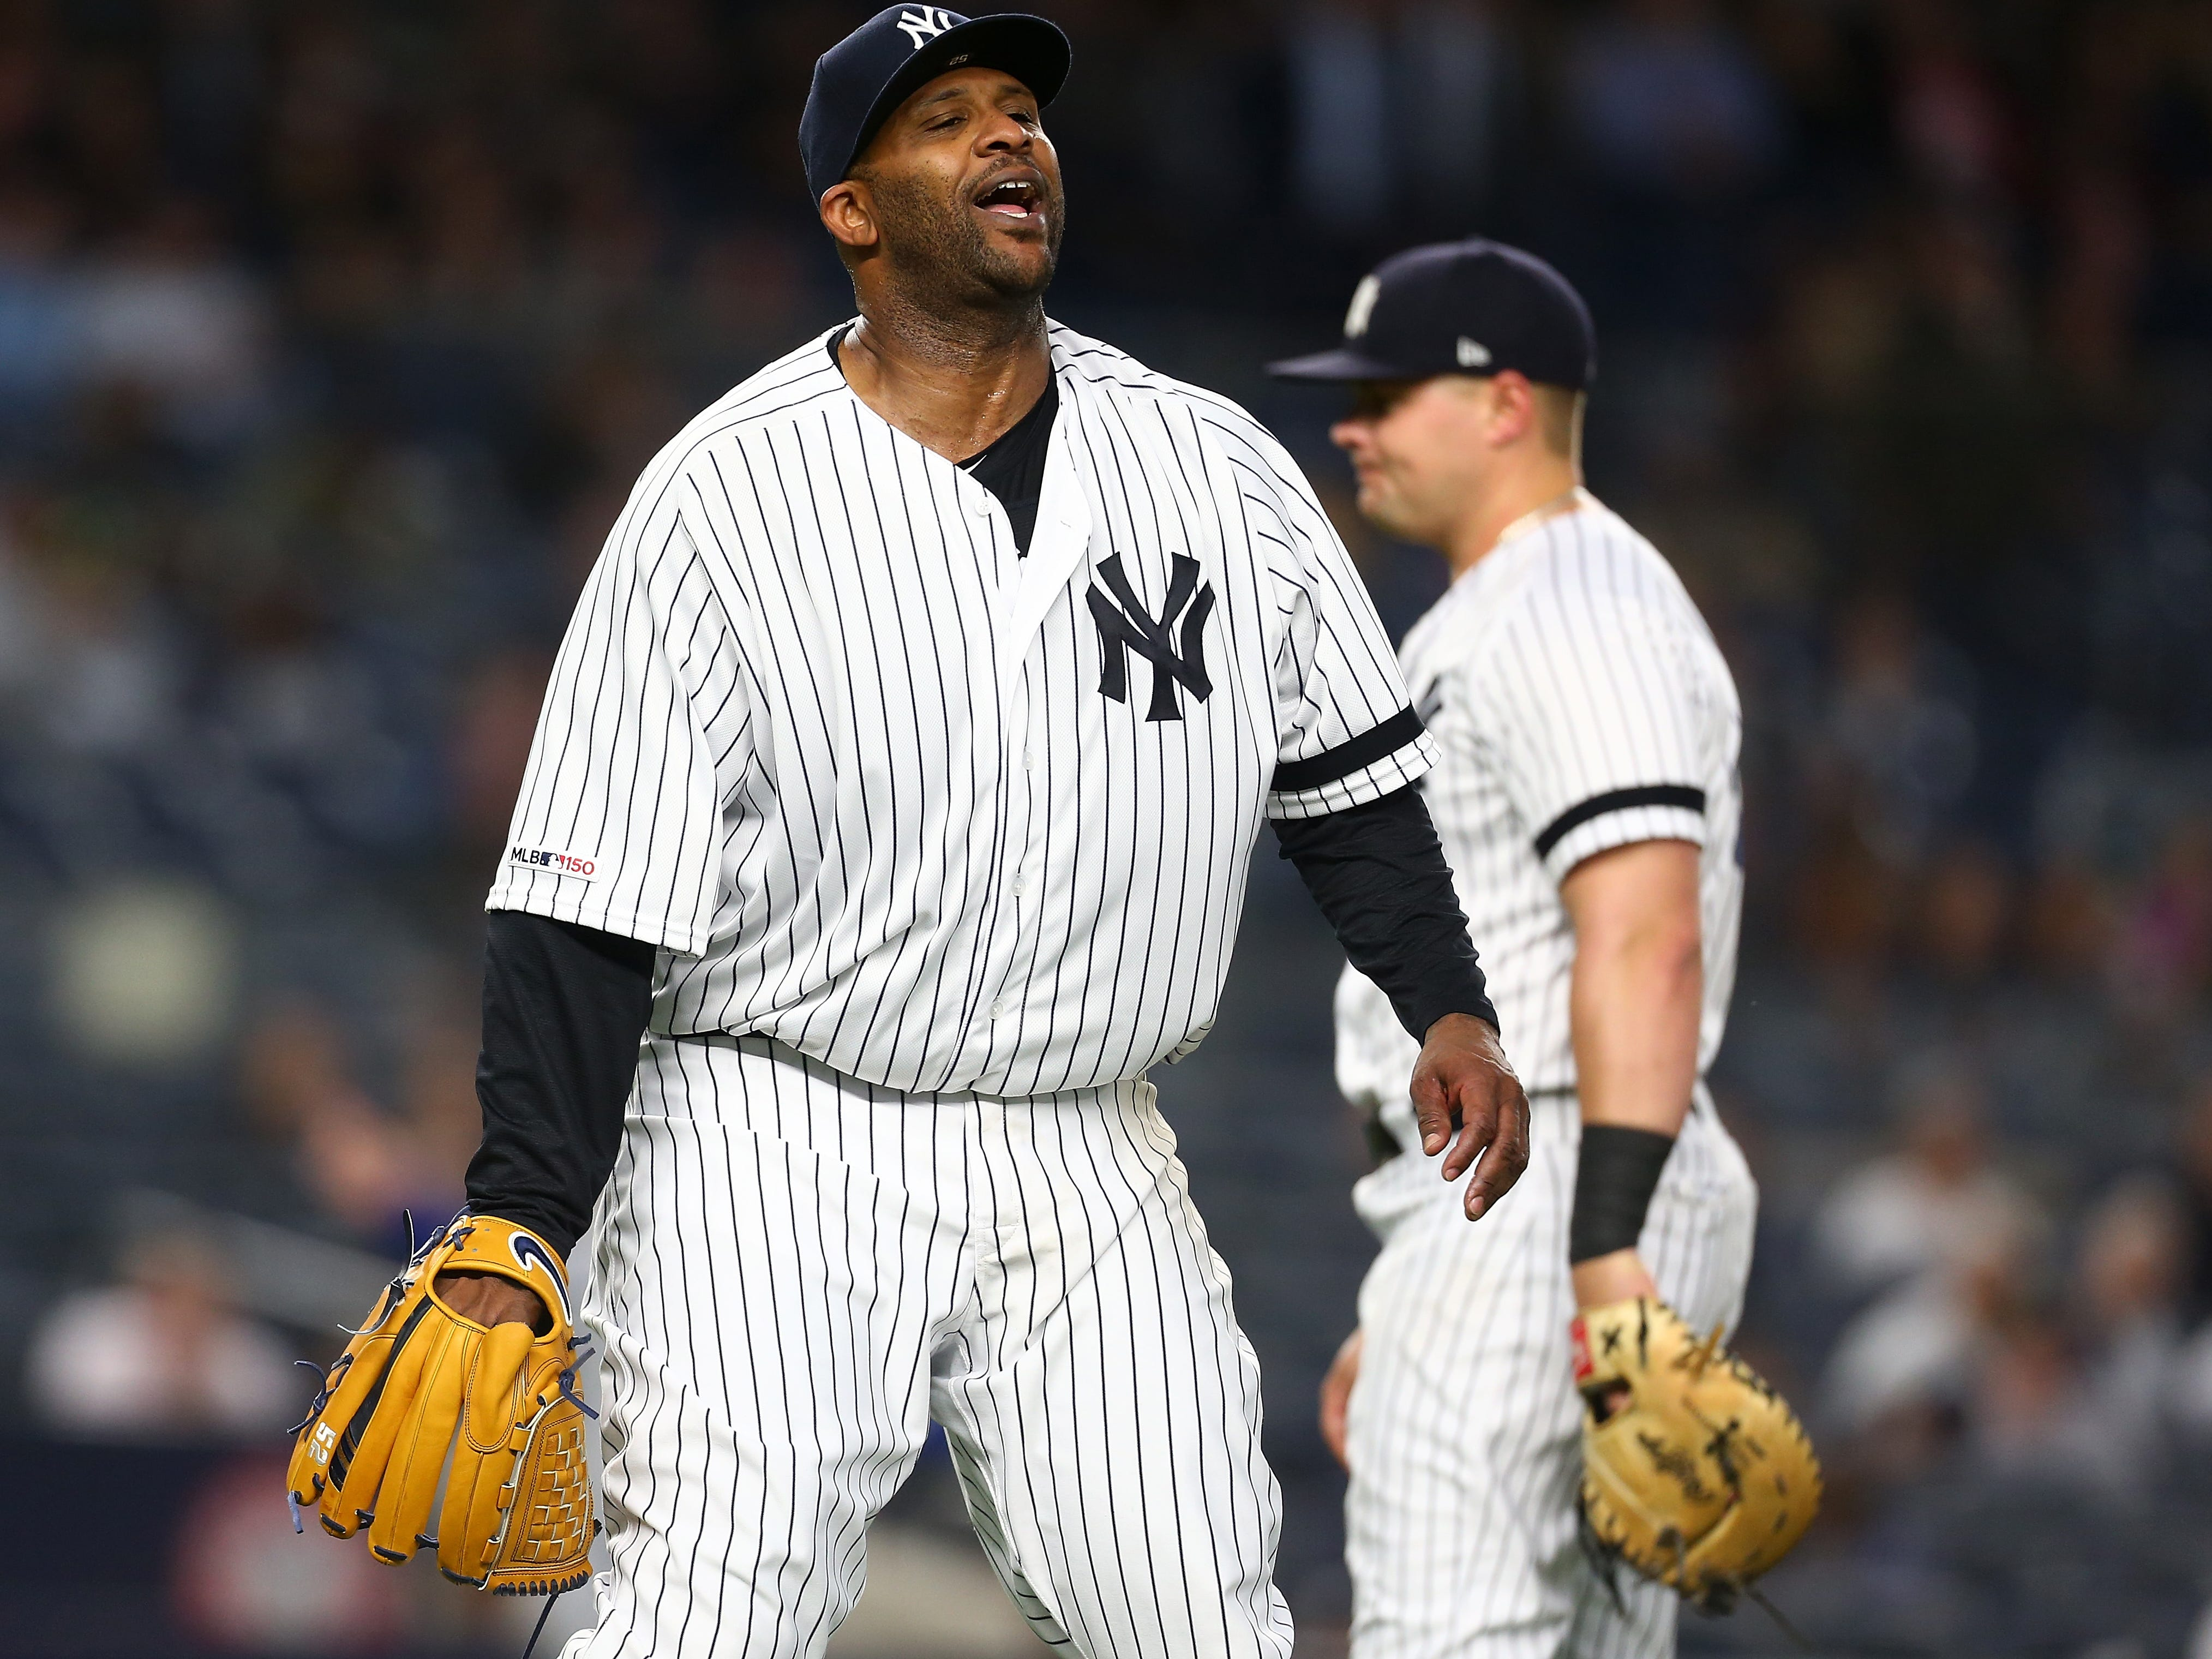 CC Sabathia of the New York Yankees reacts after committing a error in the third inning againt the Kansas City Royals at Yankee Stadium on April 19, 2019 in New York City.